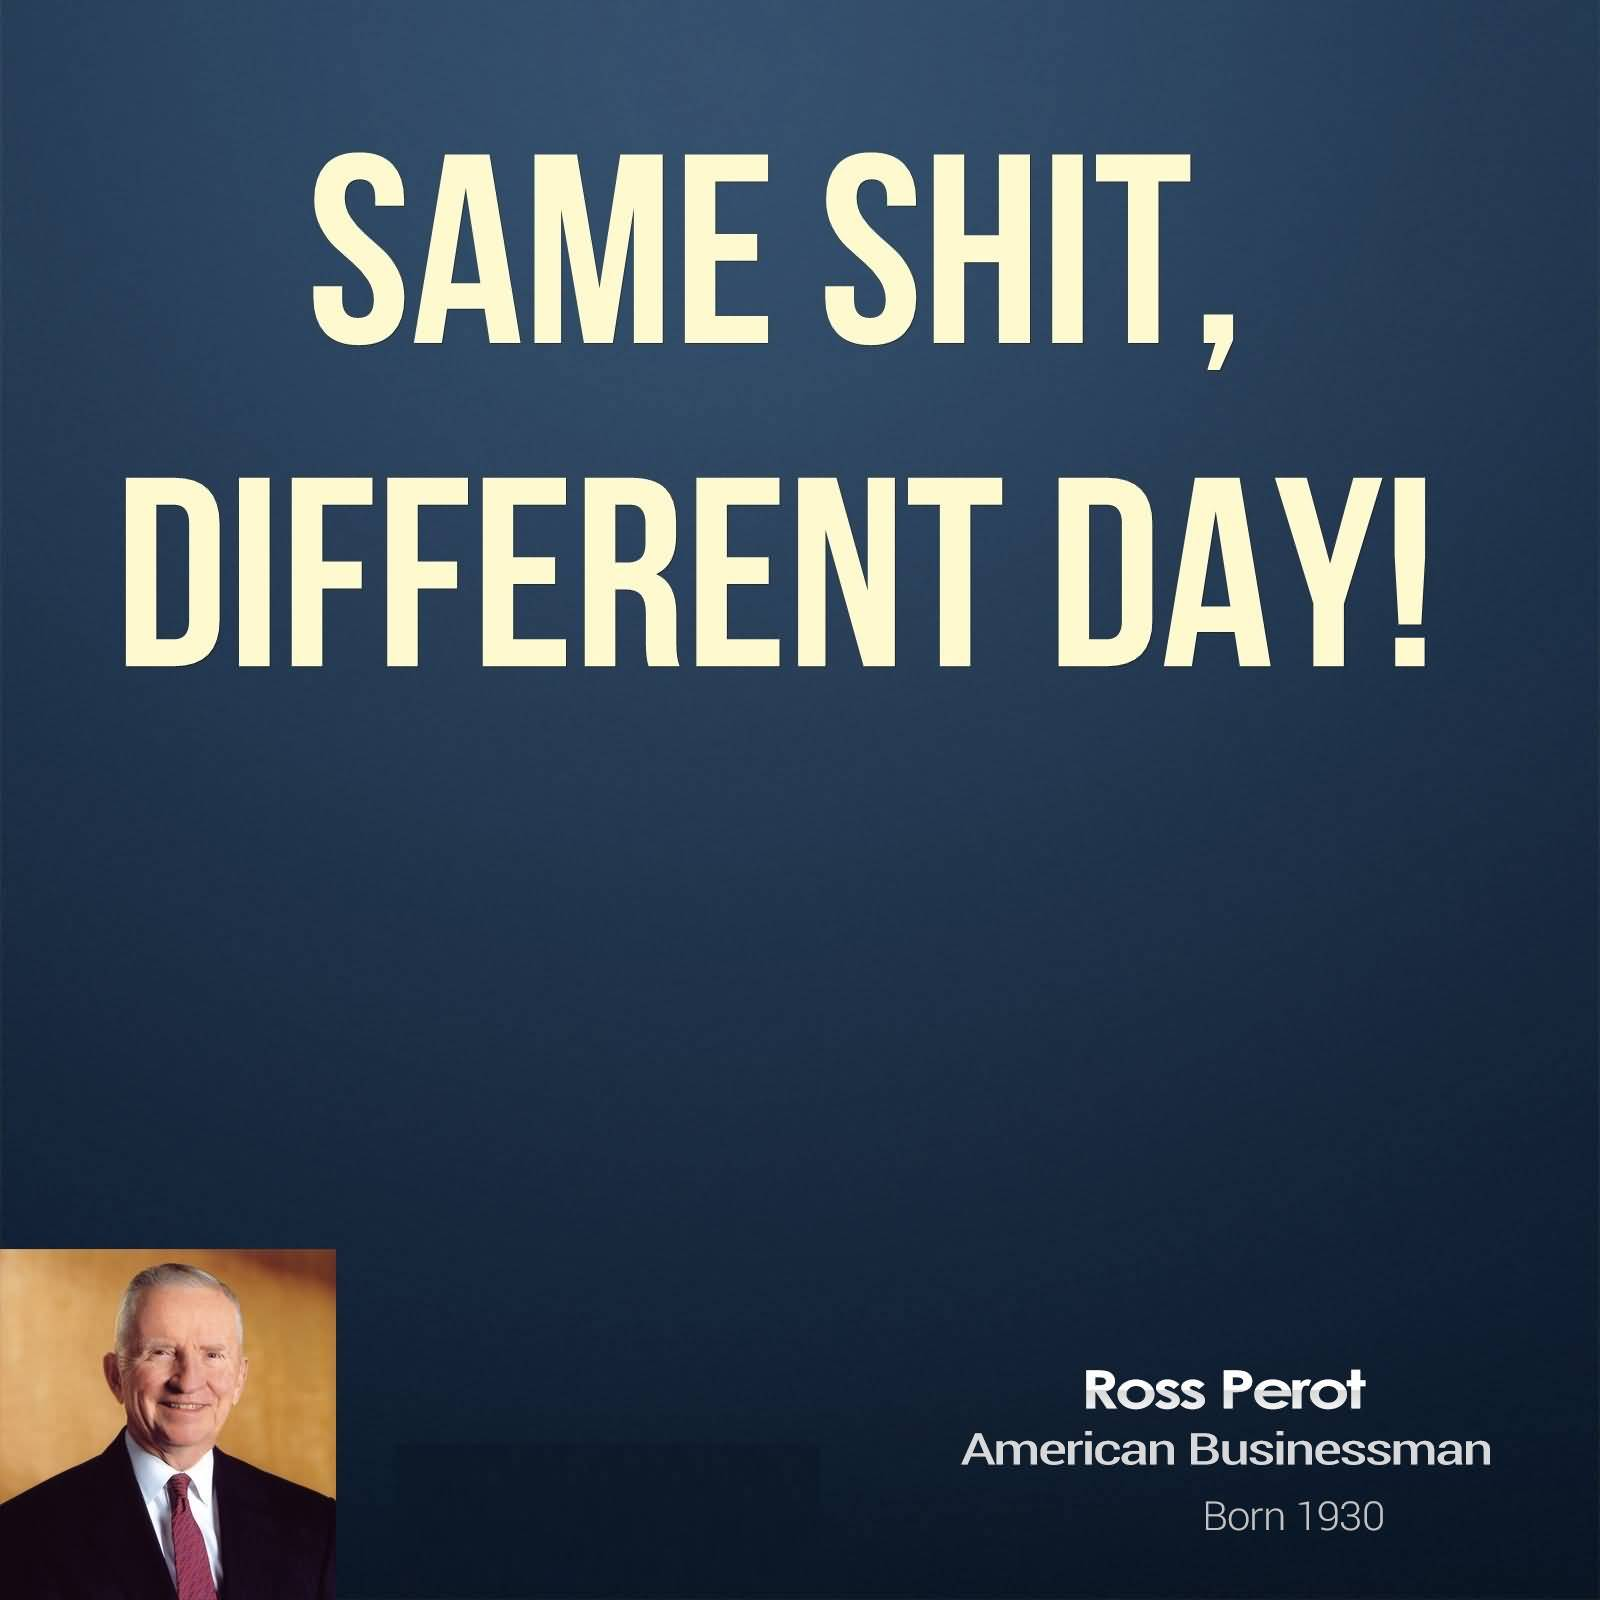 Same shit different day - Ross Perot